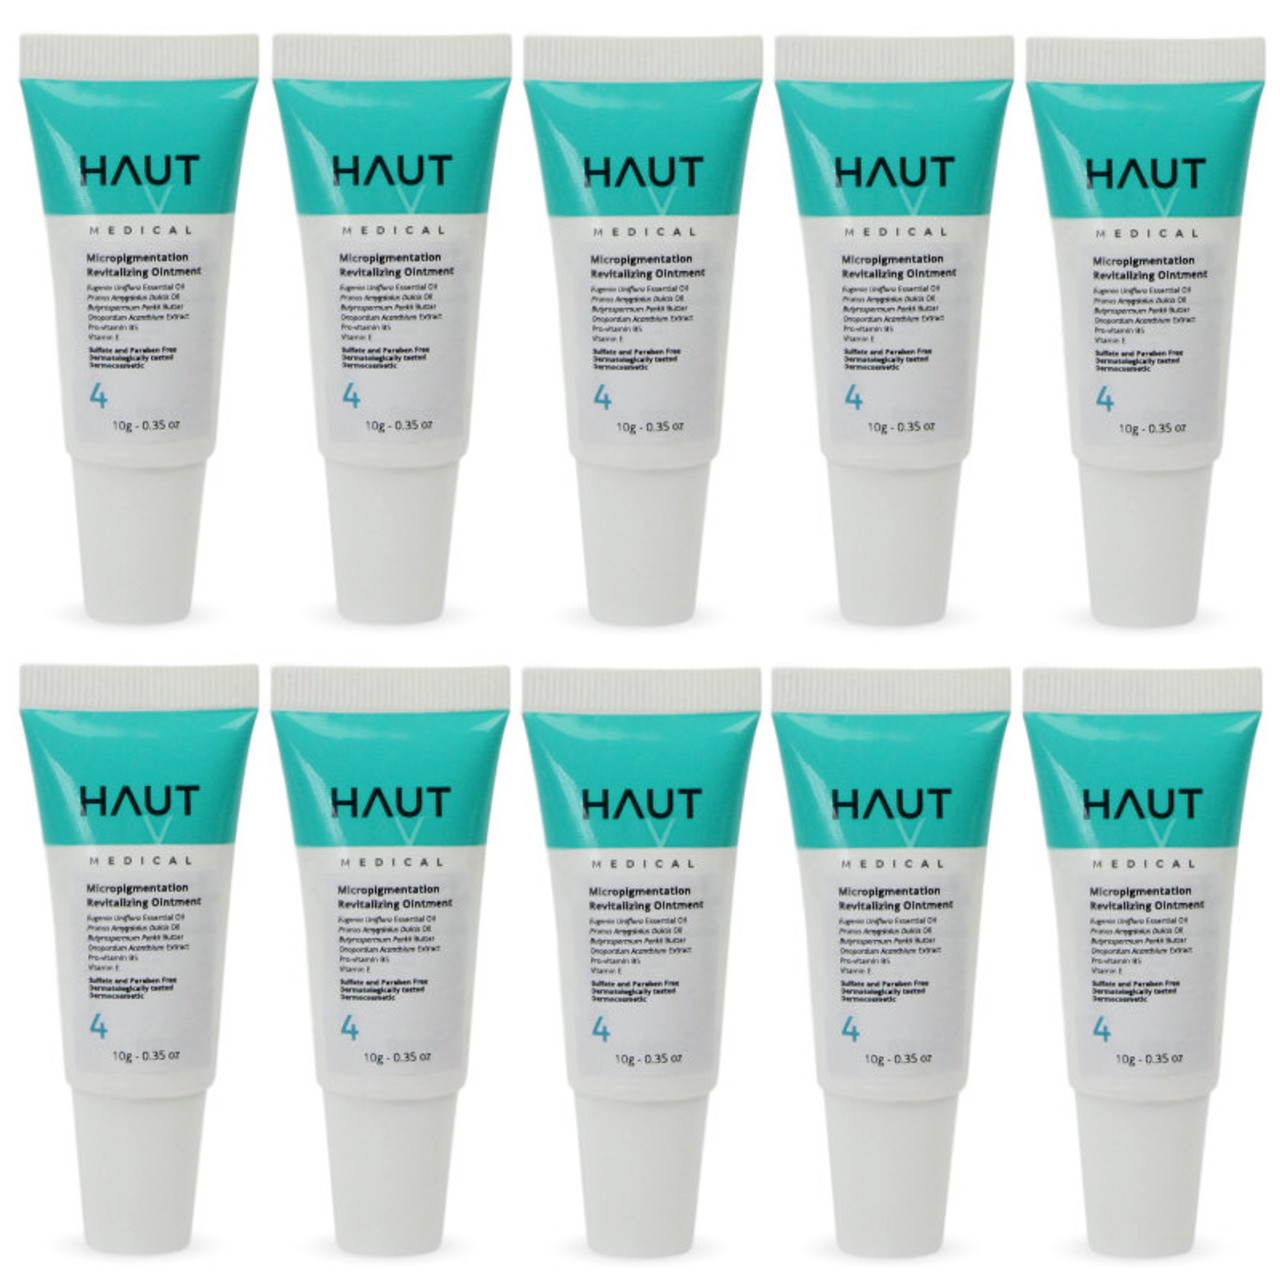 Micropigmentation Revitalizing Ointment Step 4 - Permanent Makeup (PMU) and Body Tattooing - 10g - 0.35 Oz. - PACK WITH 10 UNITS